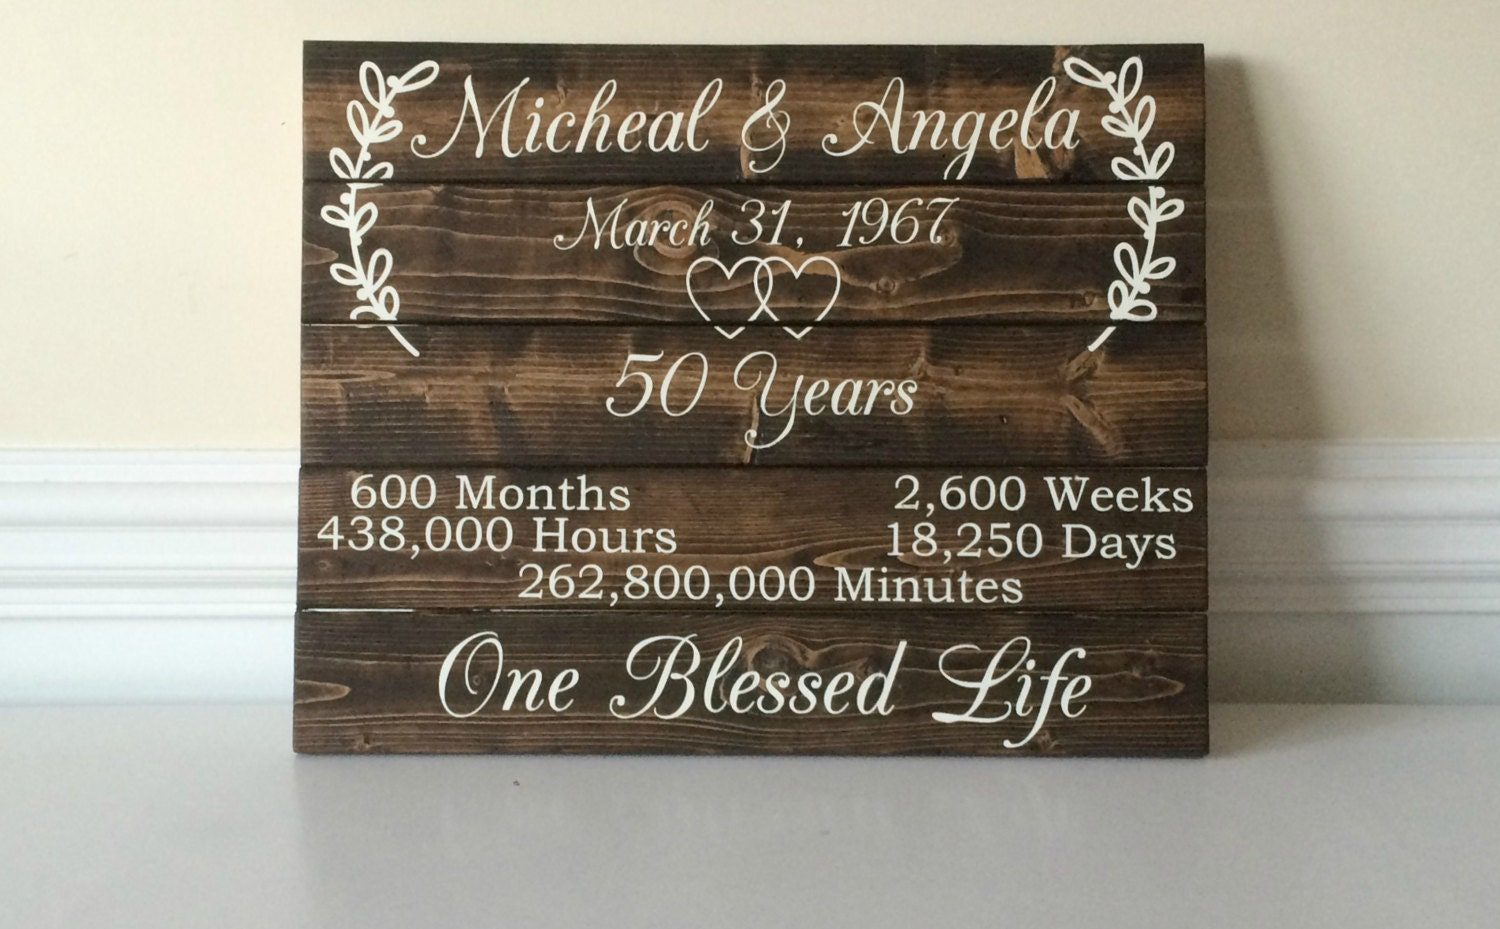 70 Year Wedding Anniversary Gifts: 50 Year Anniversary 50th Anniversary Ideas Custom Wood Sign